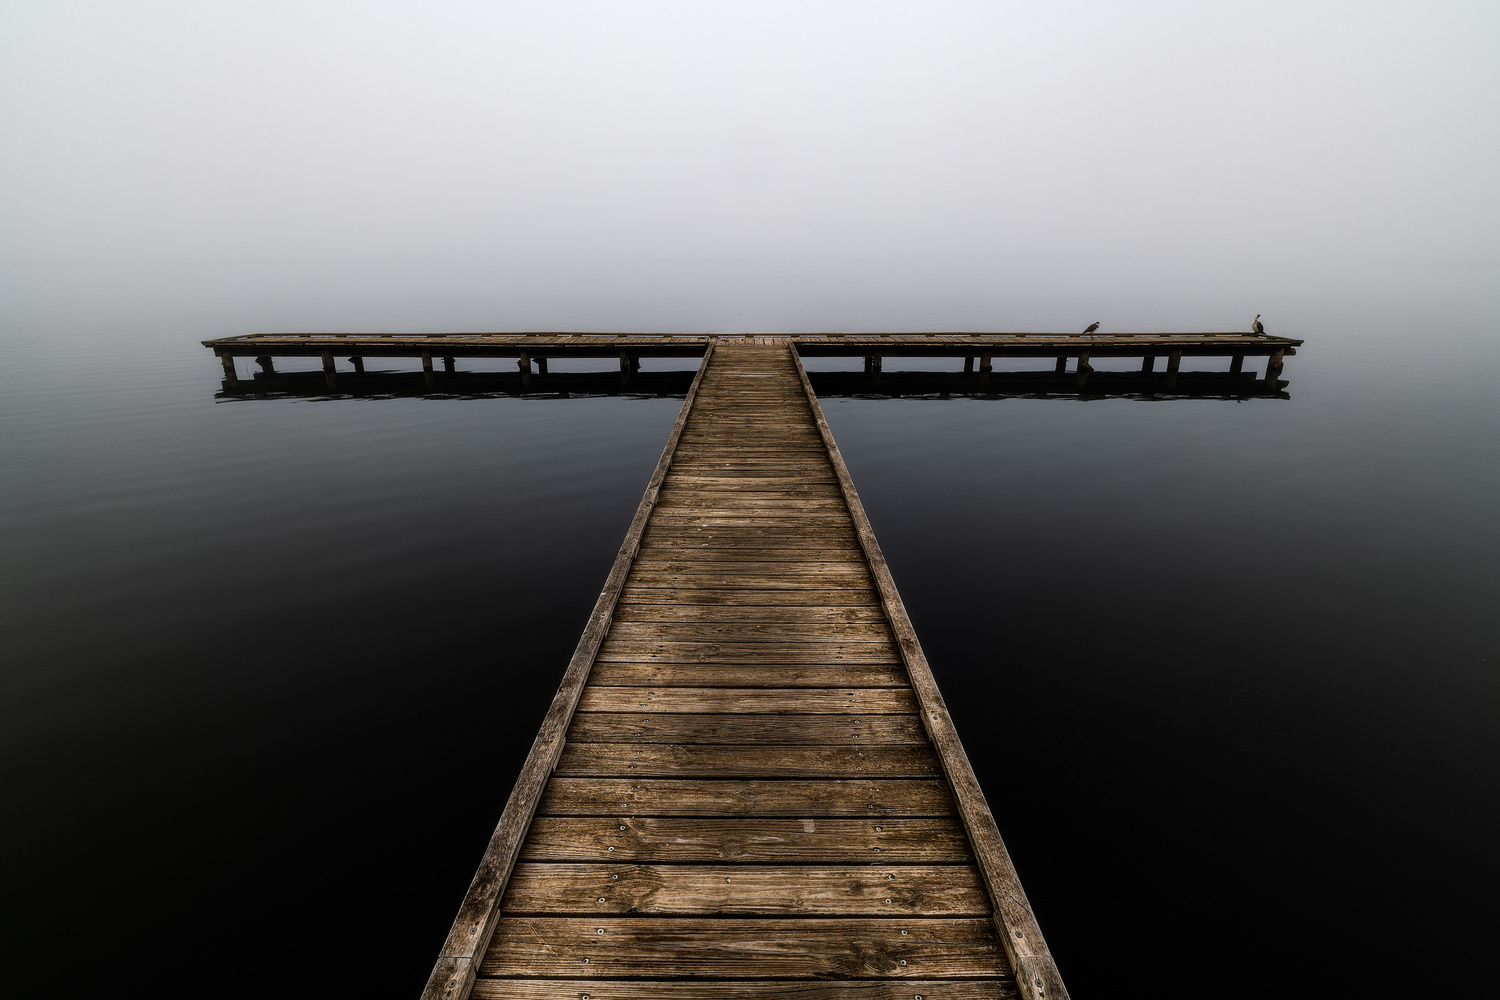 The Pier by Mark Phillips